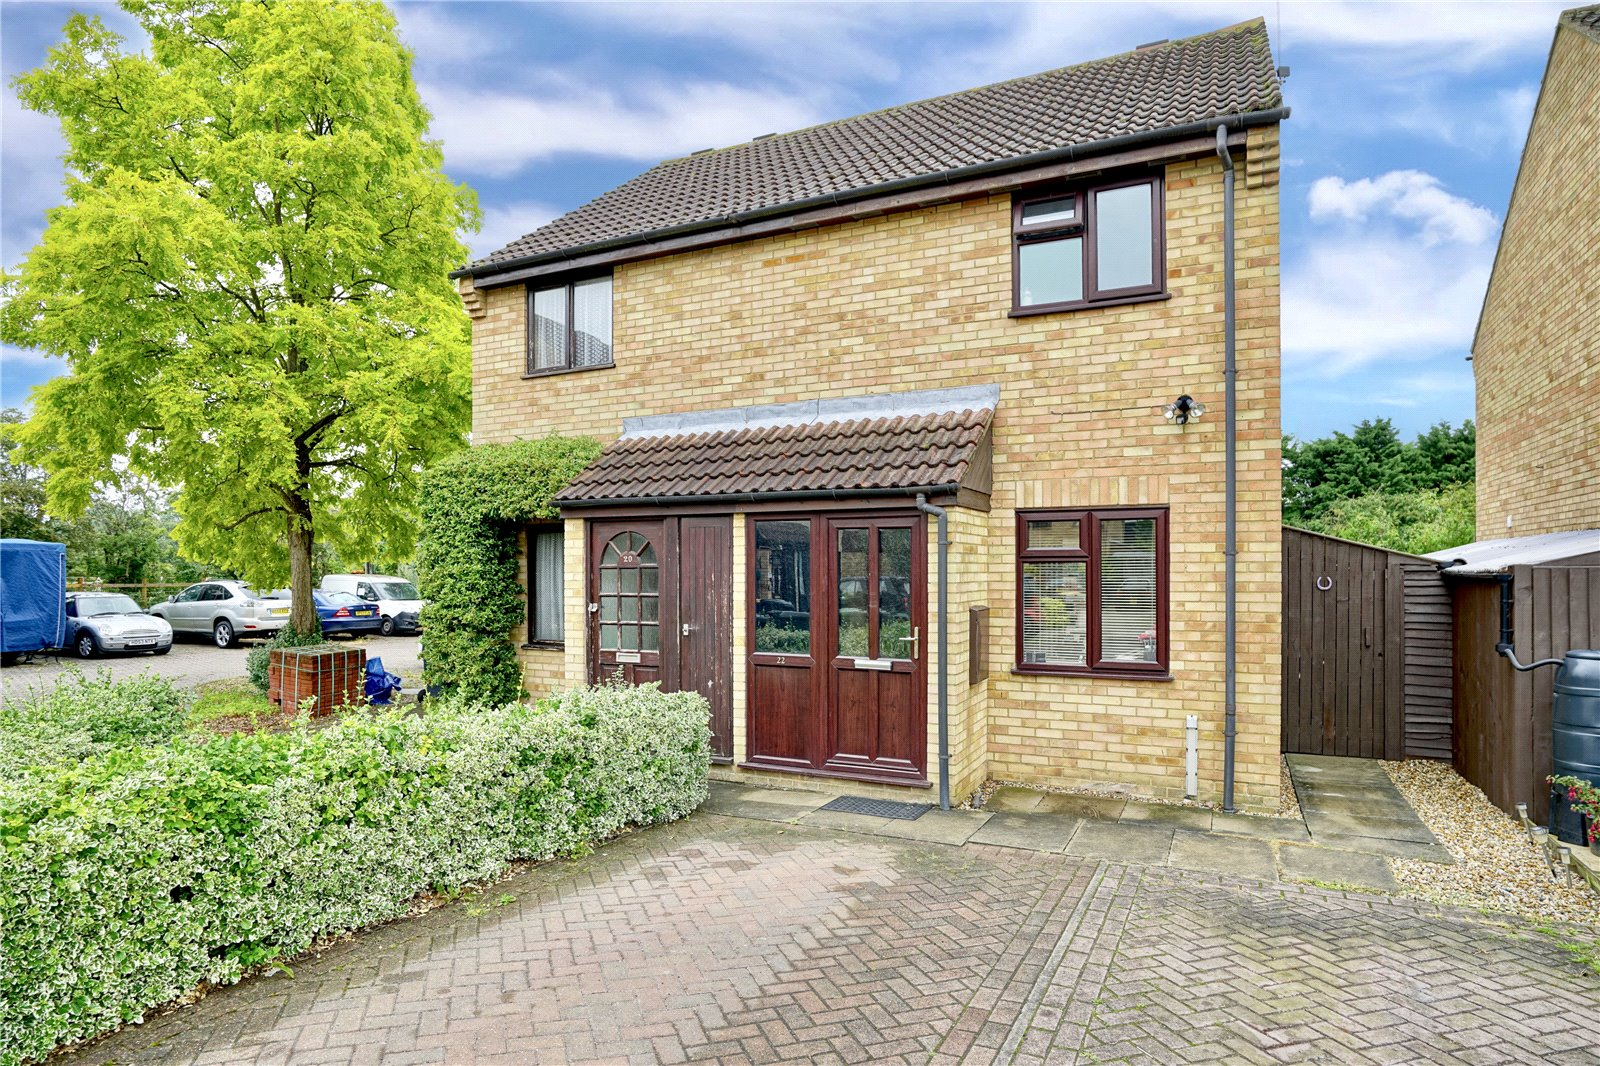 2 bed house for sale in Swallowfield, Wyboston, MK44